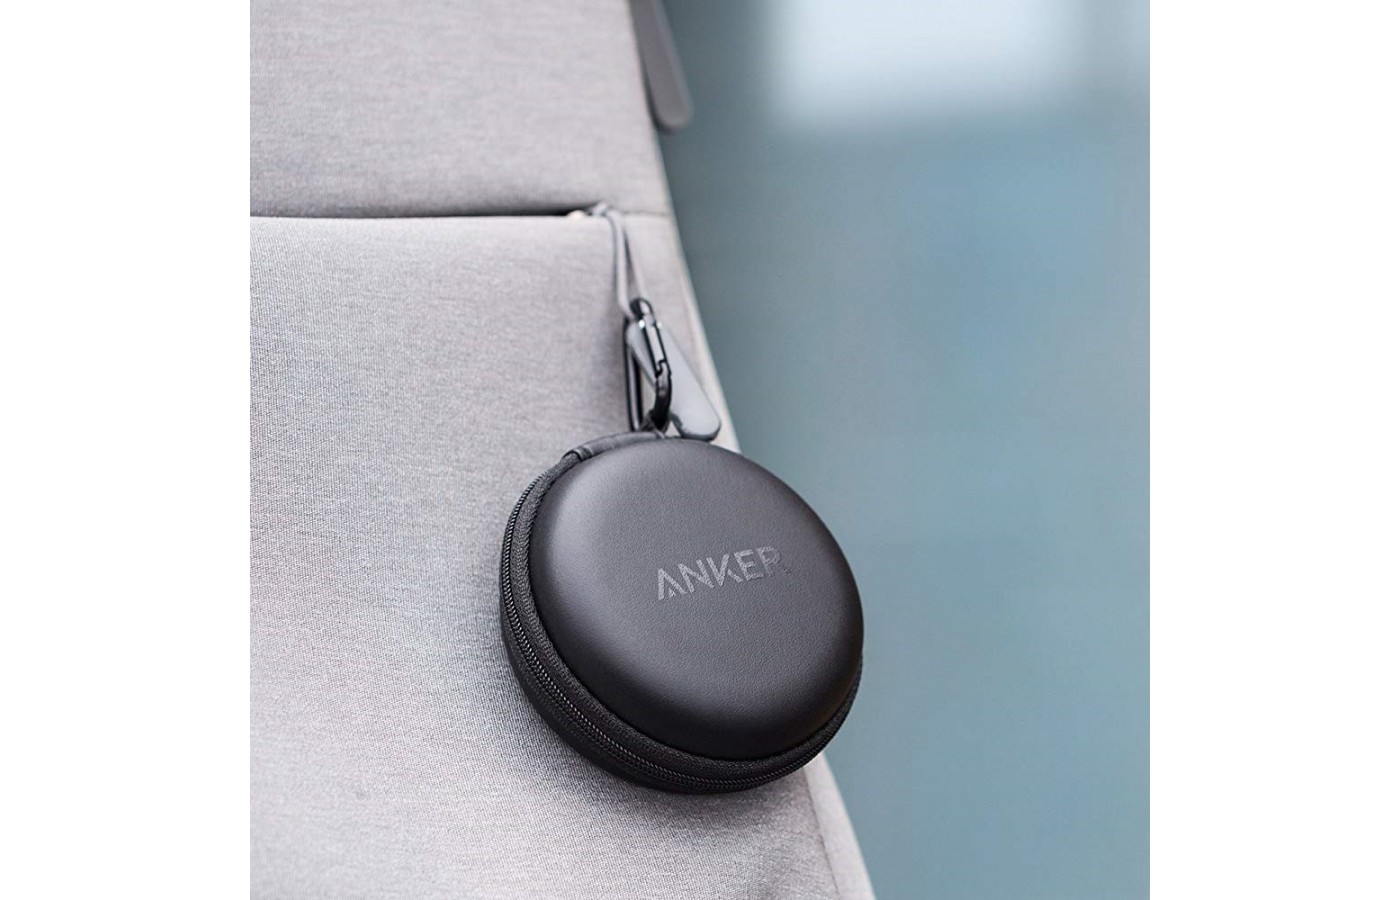 The Anker SoundBuds Curve comes with a hard case carrying case for protection even on the go.